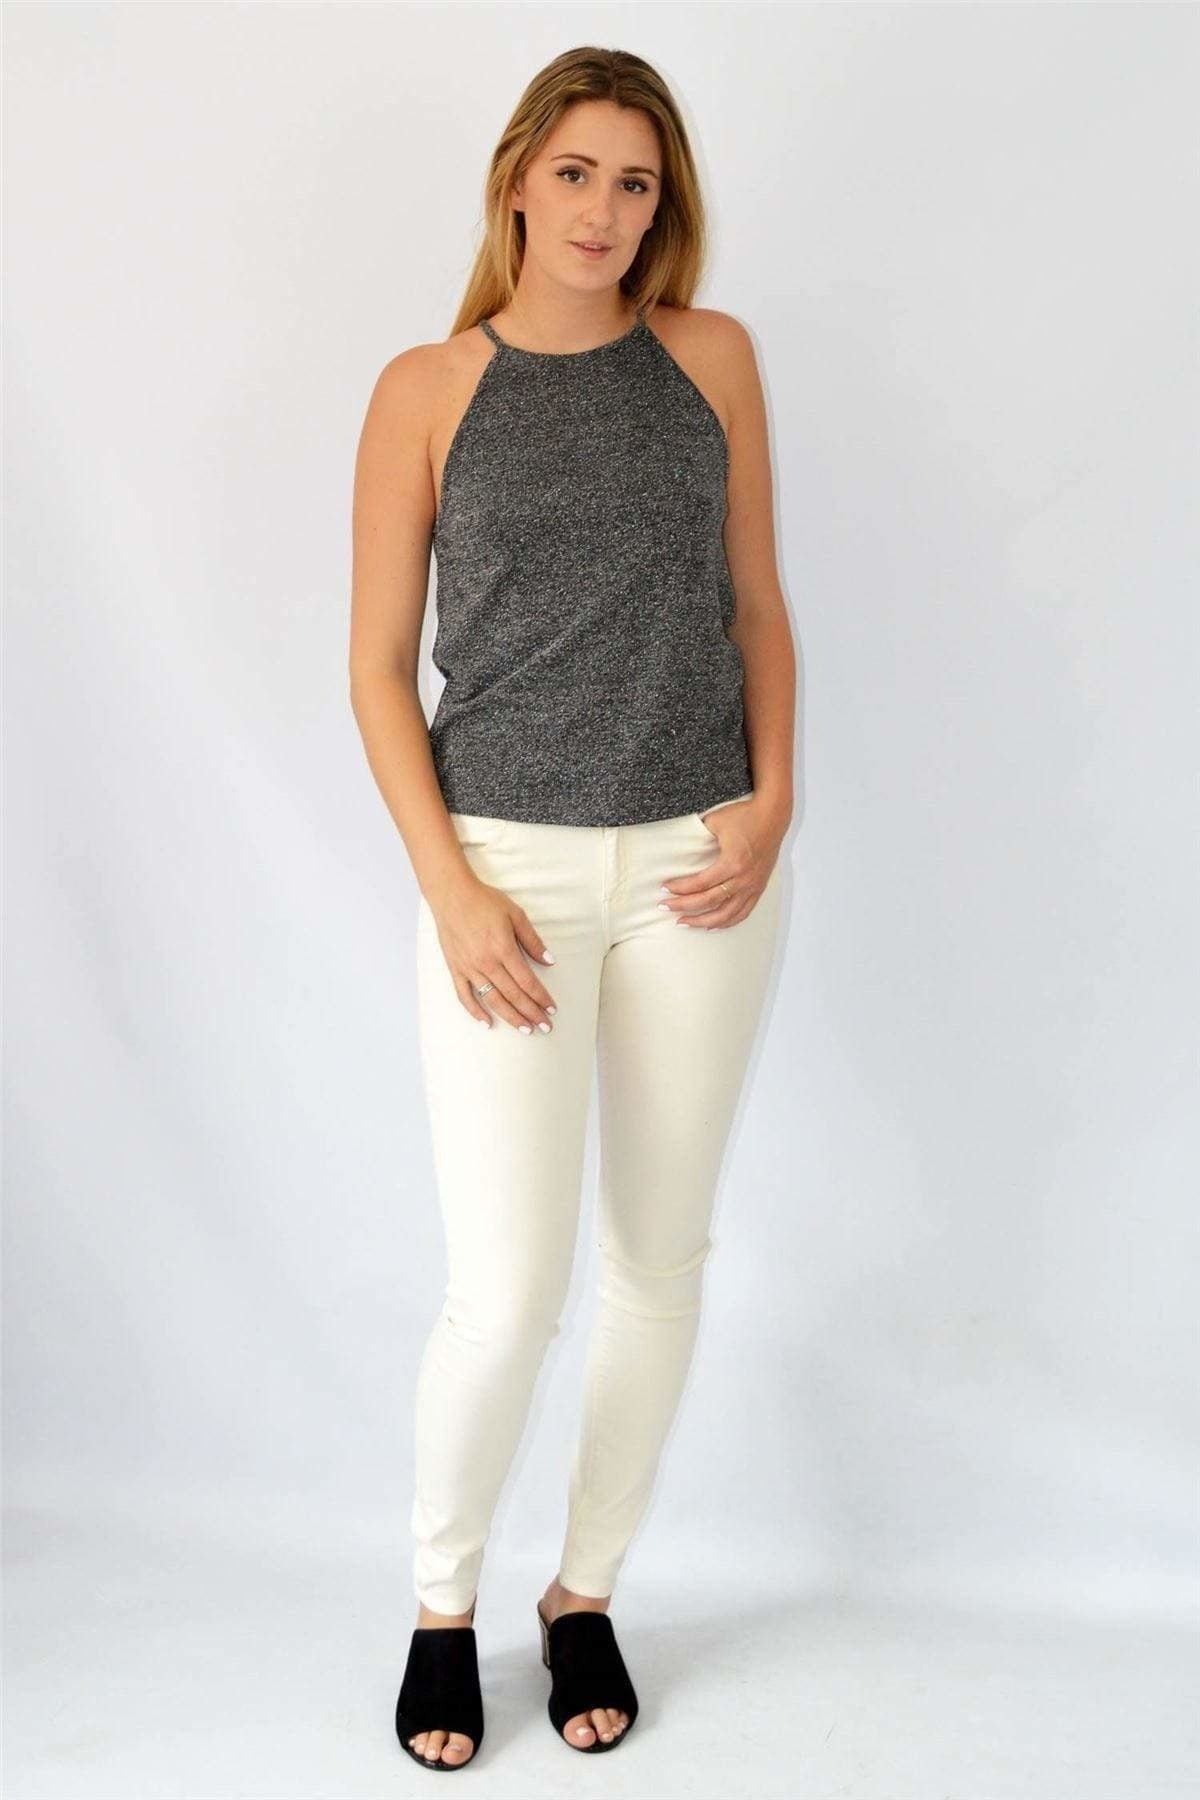 Urban Outfitters Urban Outfitters Charcoal/Silver Shimmer Sparkle Top | Secret Label